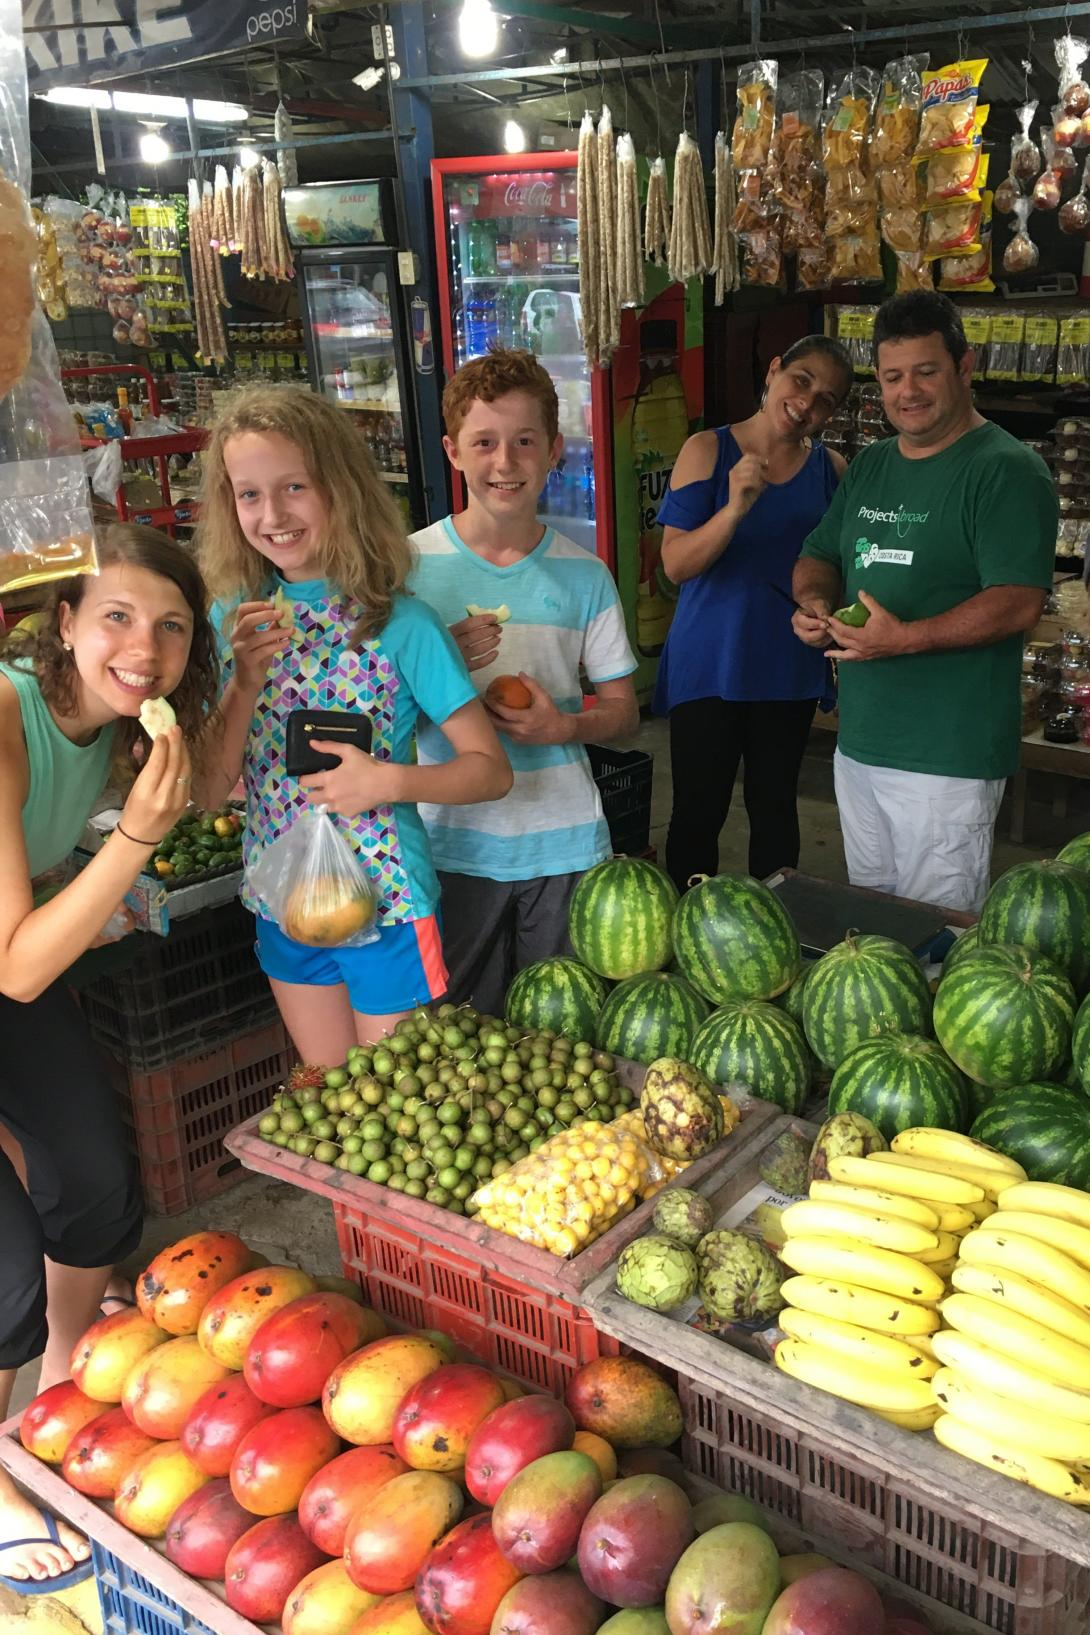 Projects Abroad volunteers looking for fresh fruit to stay healthy during travelling to Costa Rica.